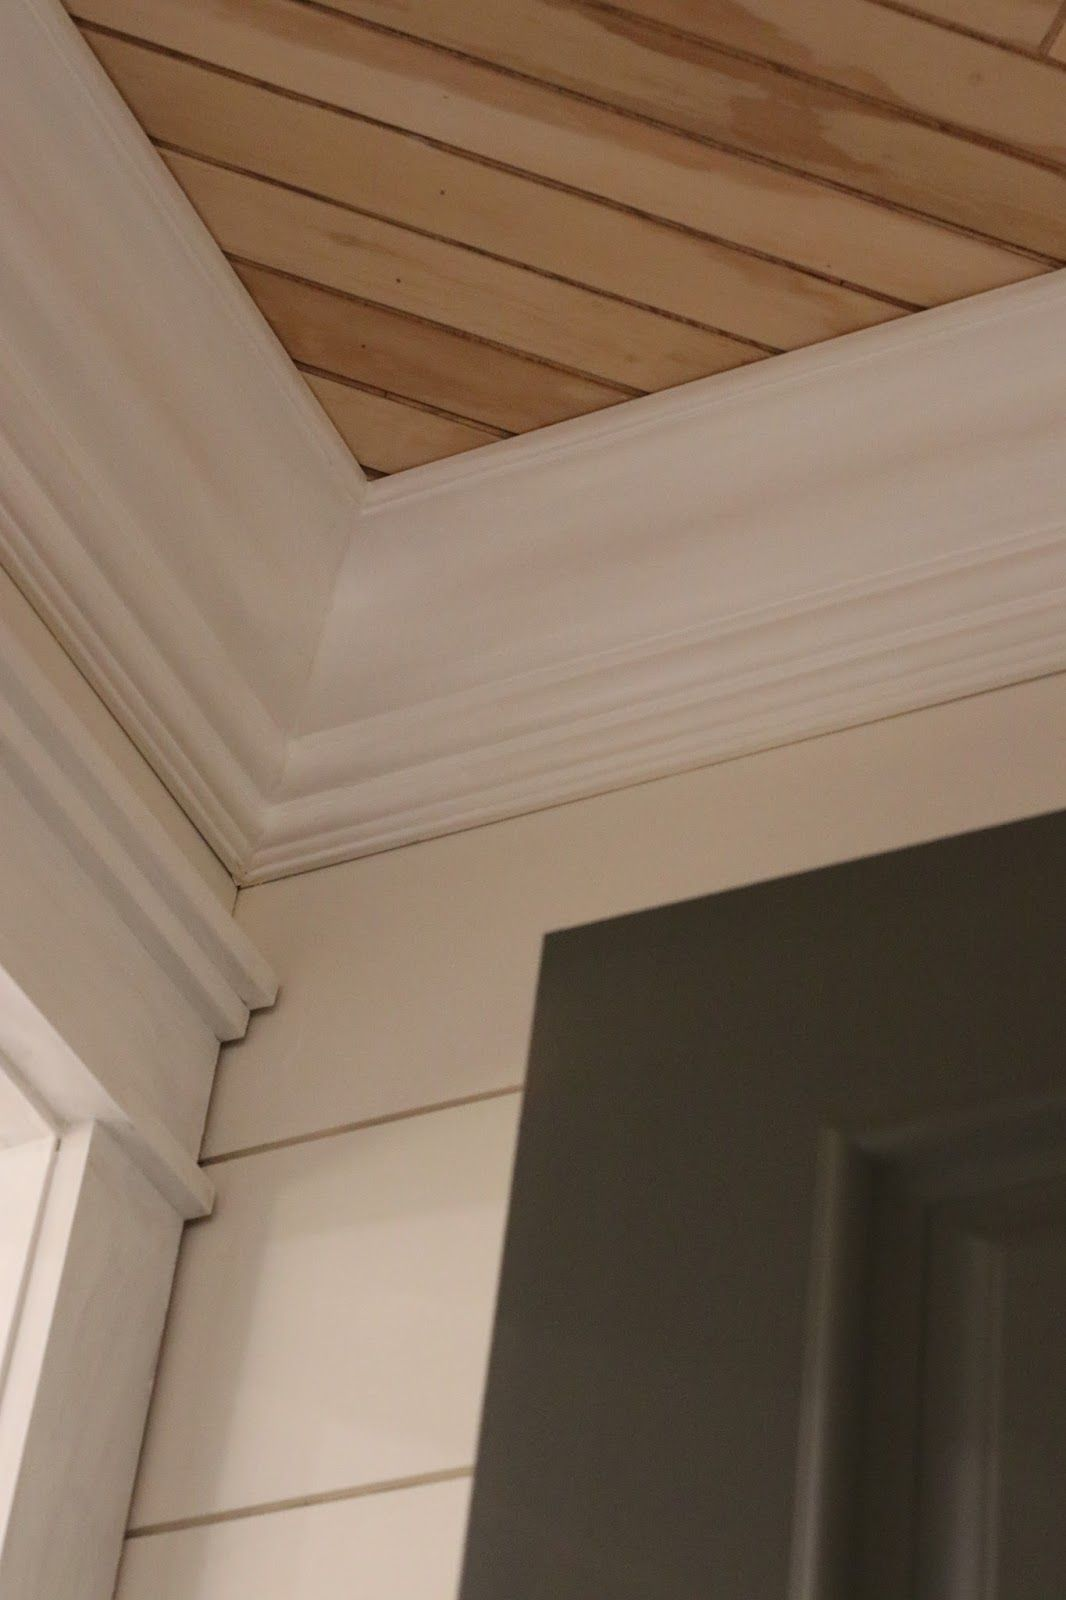 We Covered The Whole Space In Shiplap And Painted It All A Creamy